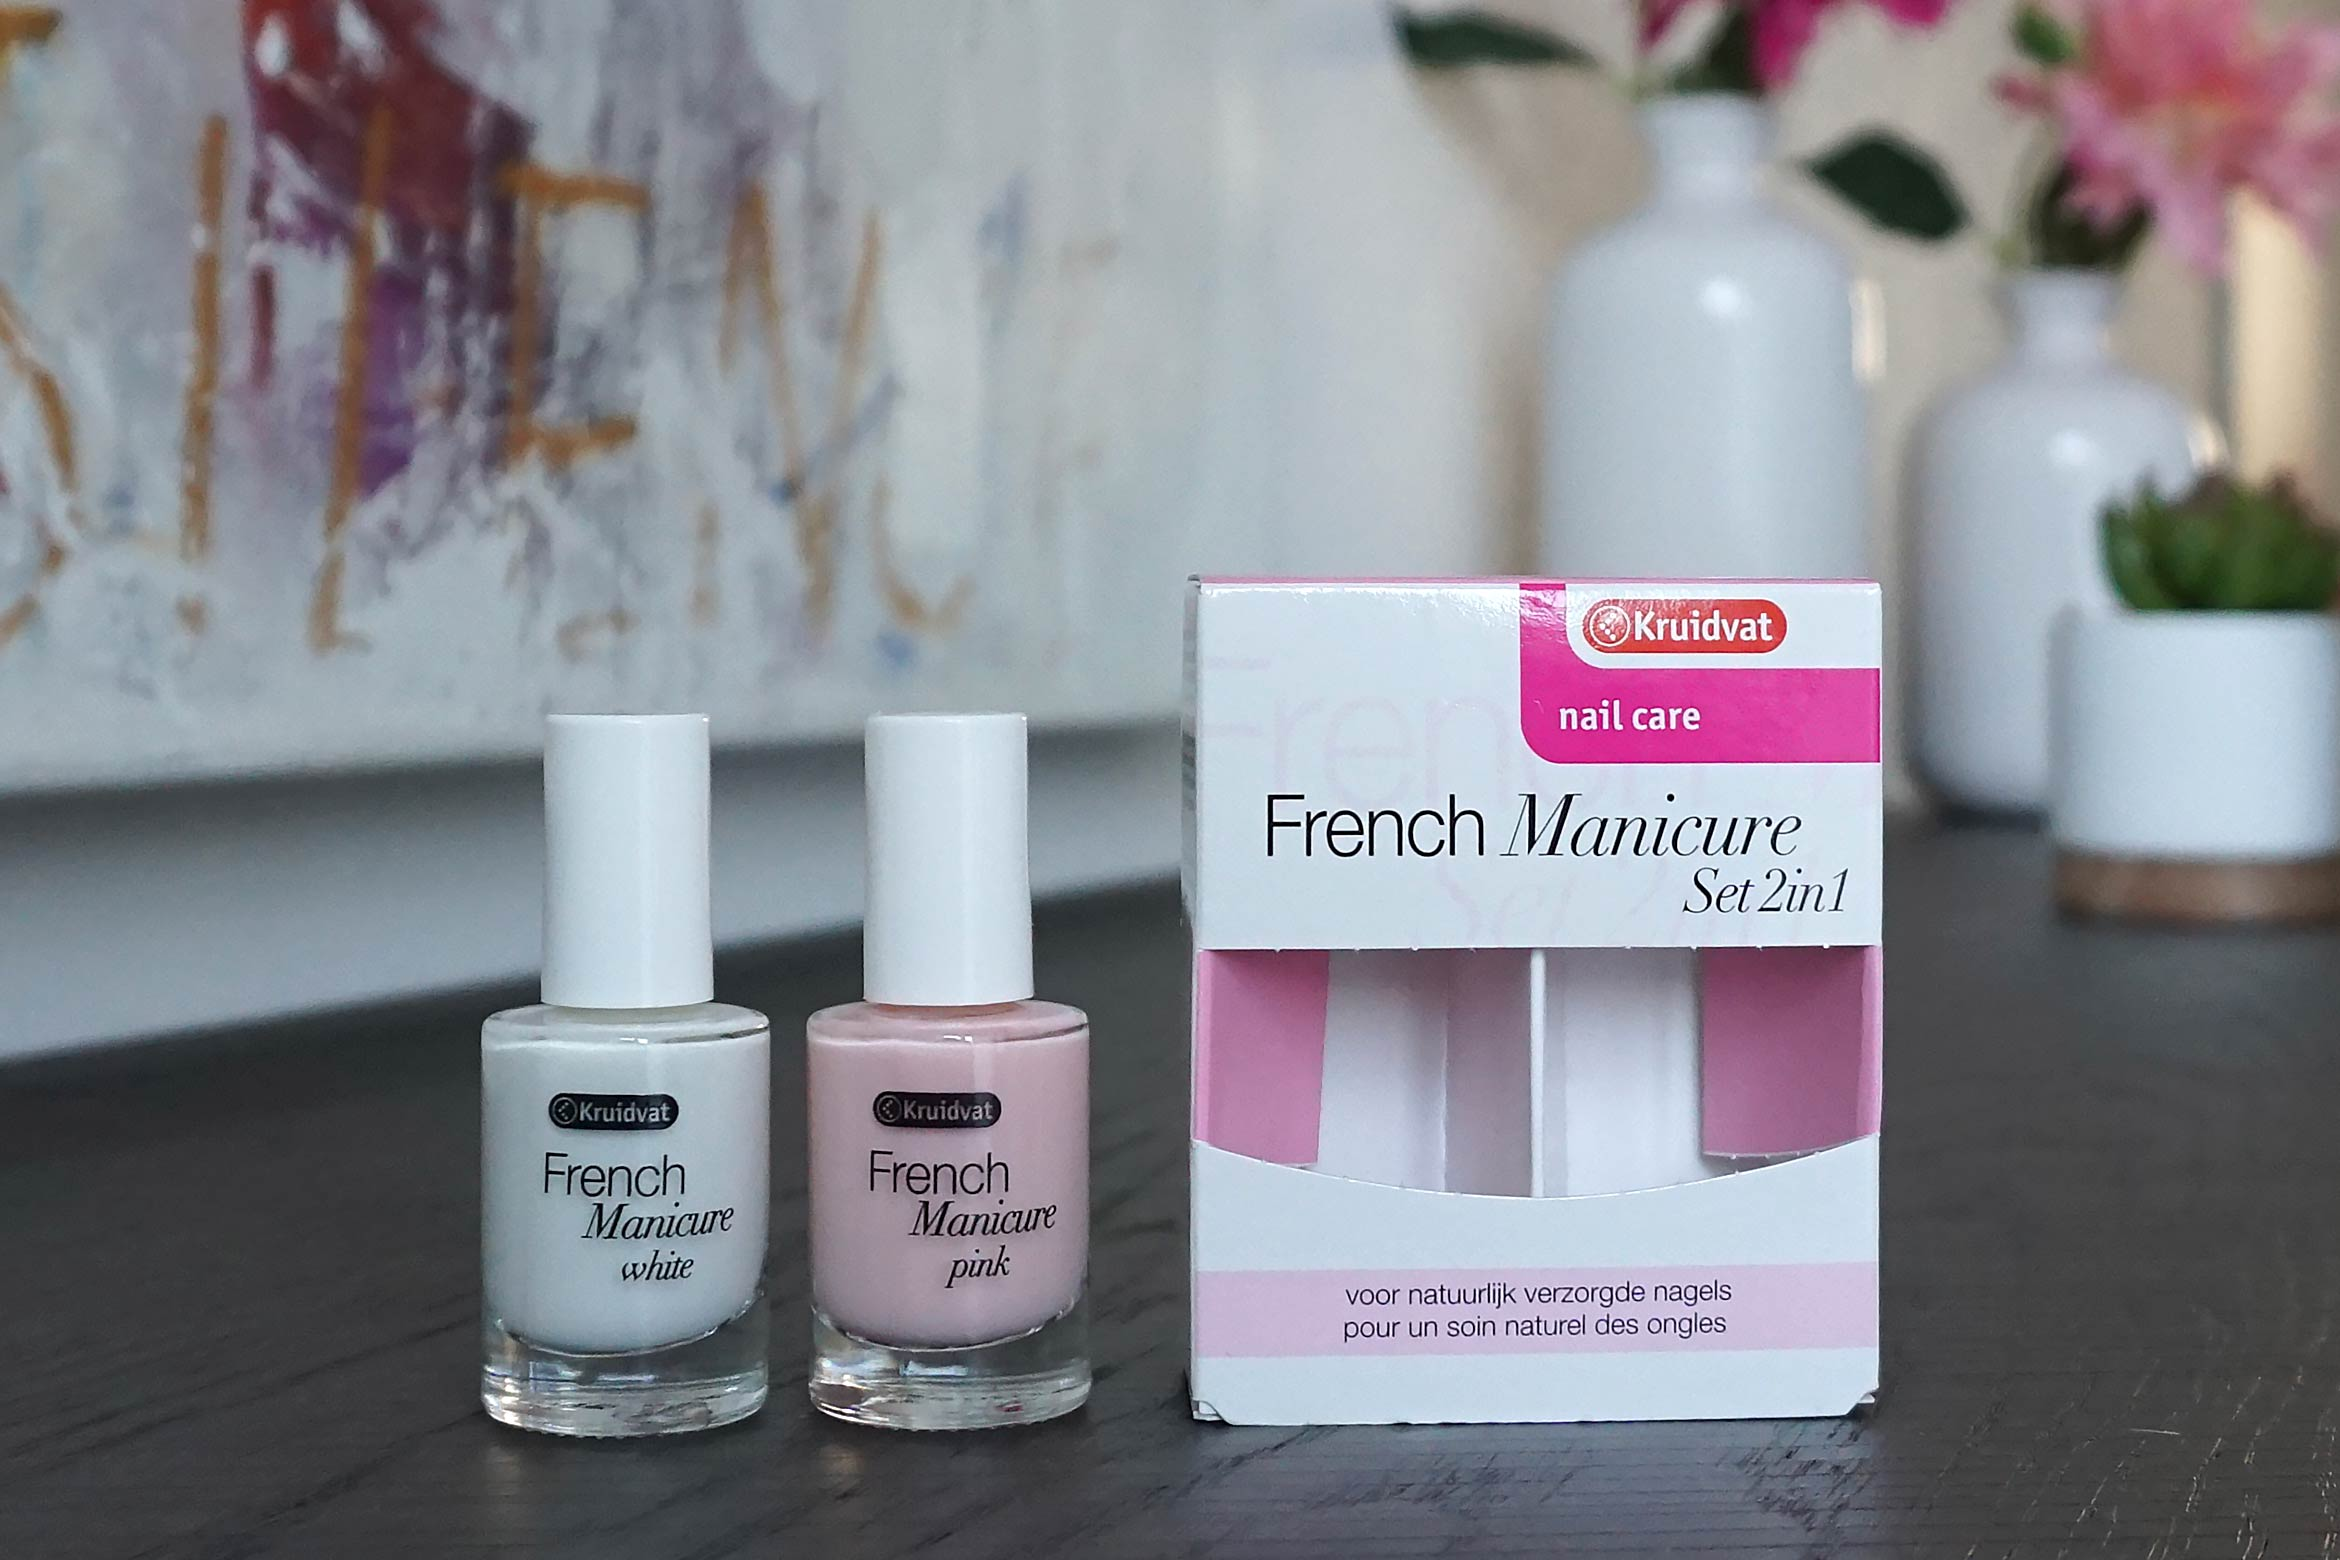 kruidvat-2-in-1-french-manicure-review